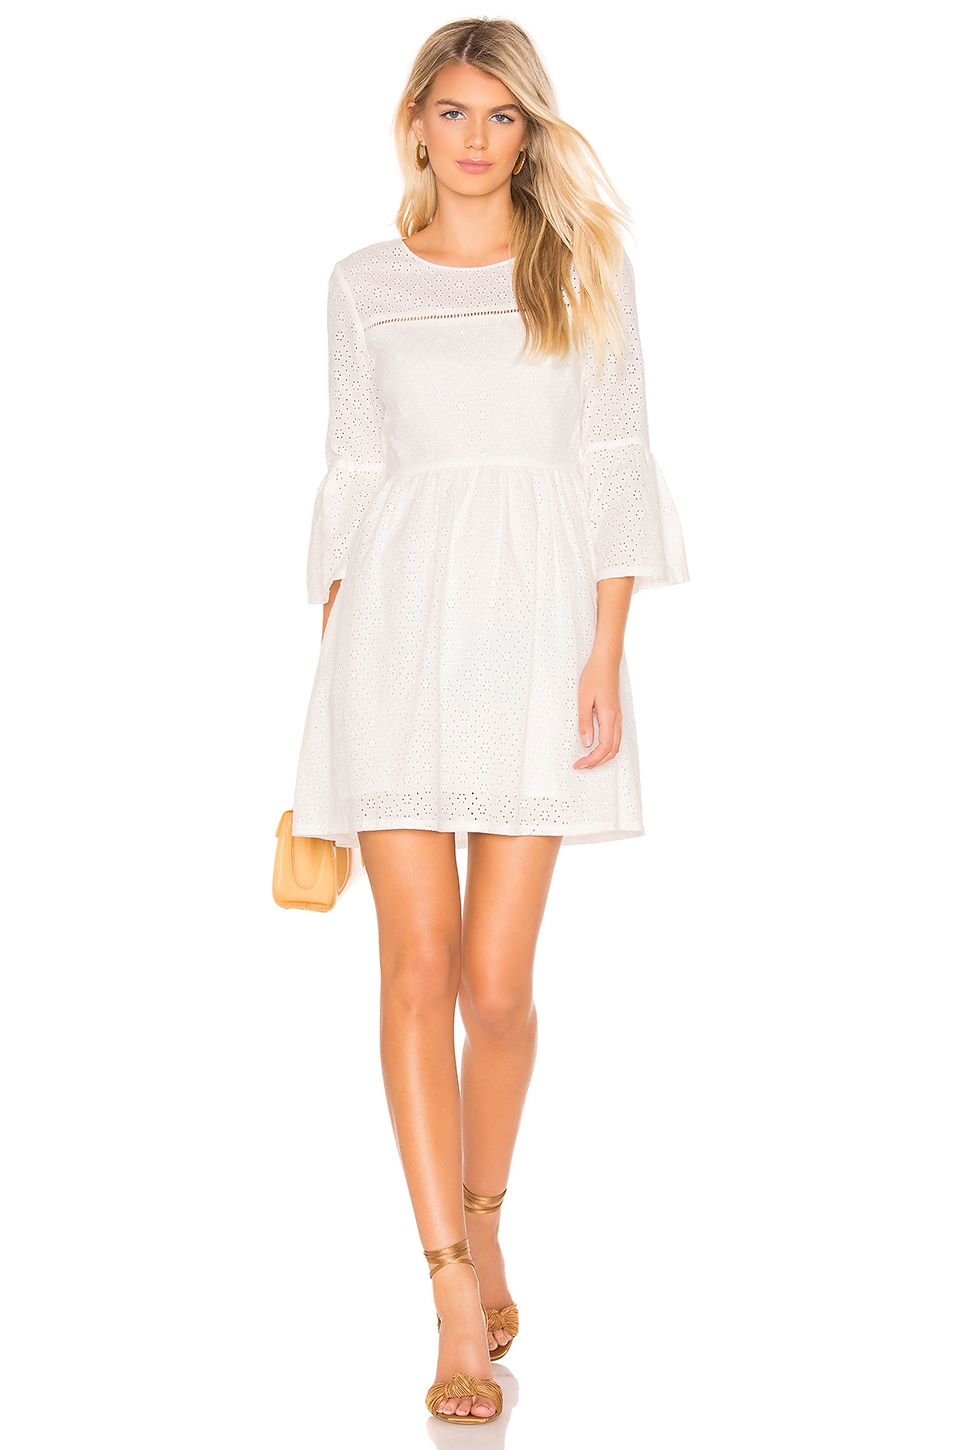 BB Dakota JACK by BB Dakota Eyelet On The Prize Dress in Bright White